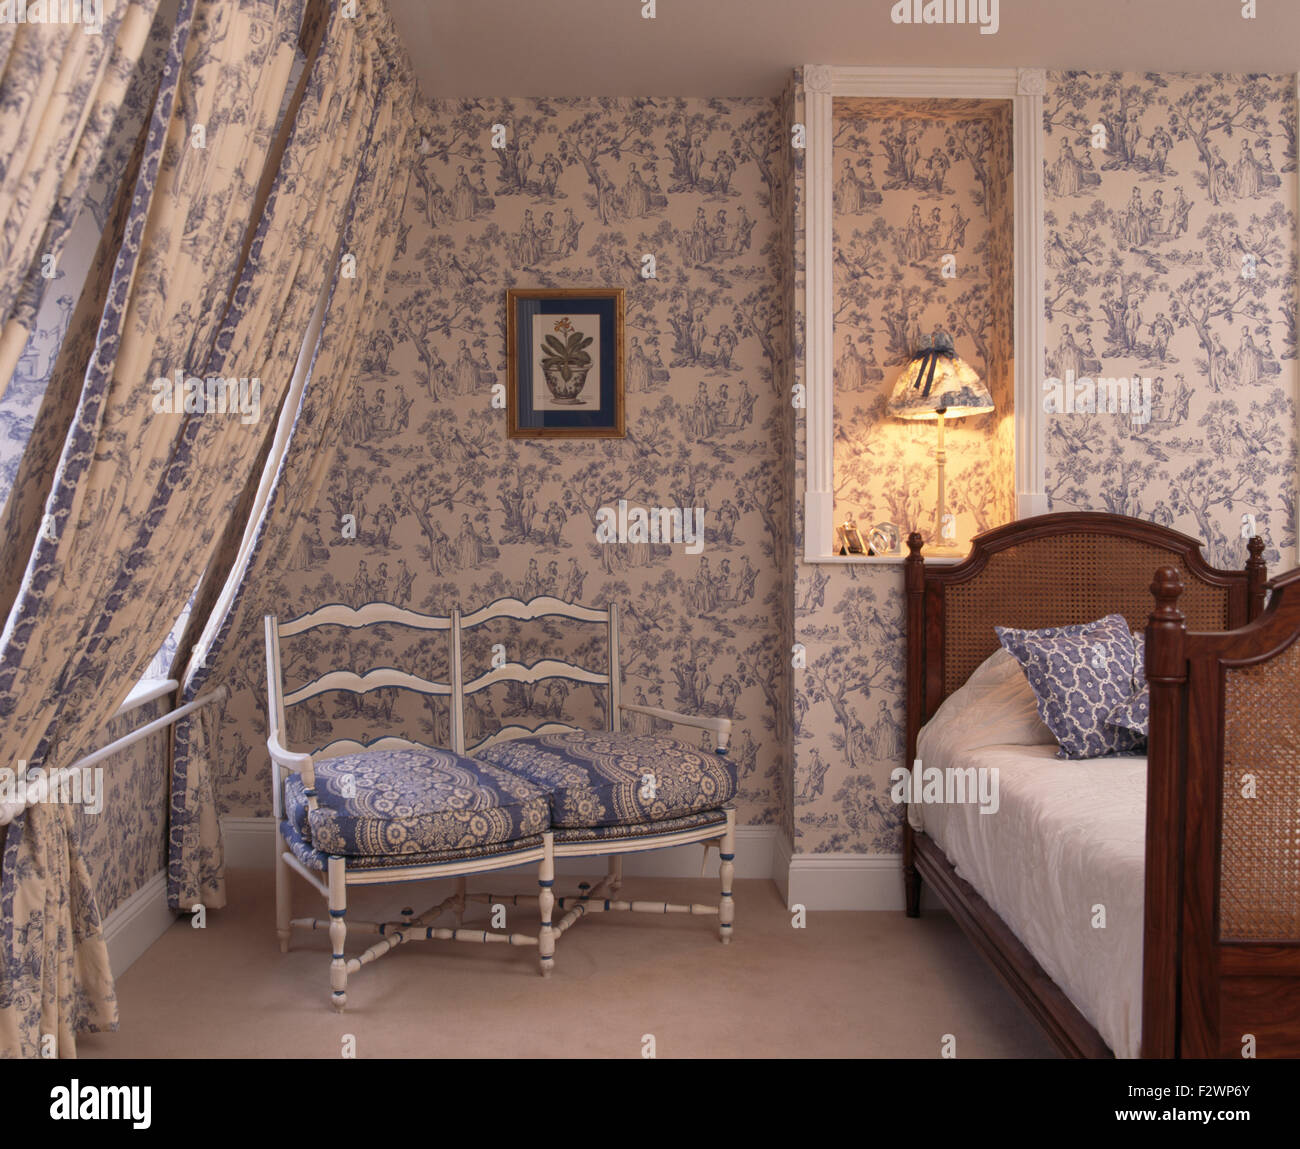 Attirant Blue Toile De Jouy Wallpaper And Matching Drapes In Townhouse Bedroom With  A White Wooden Sofa